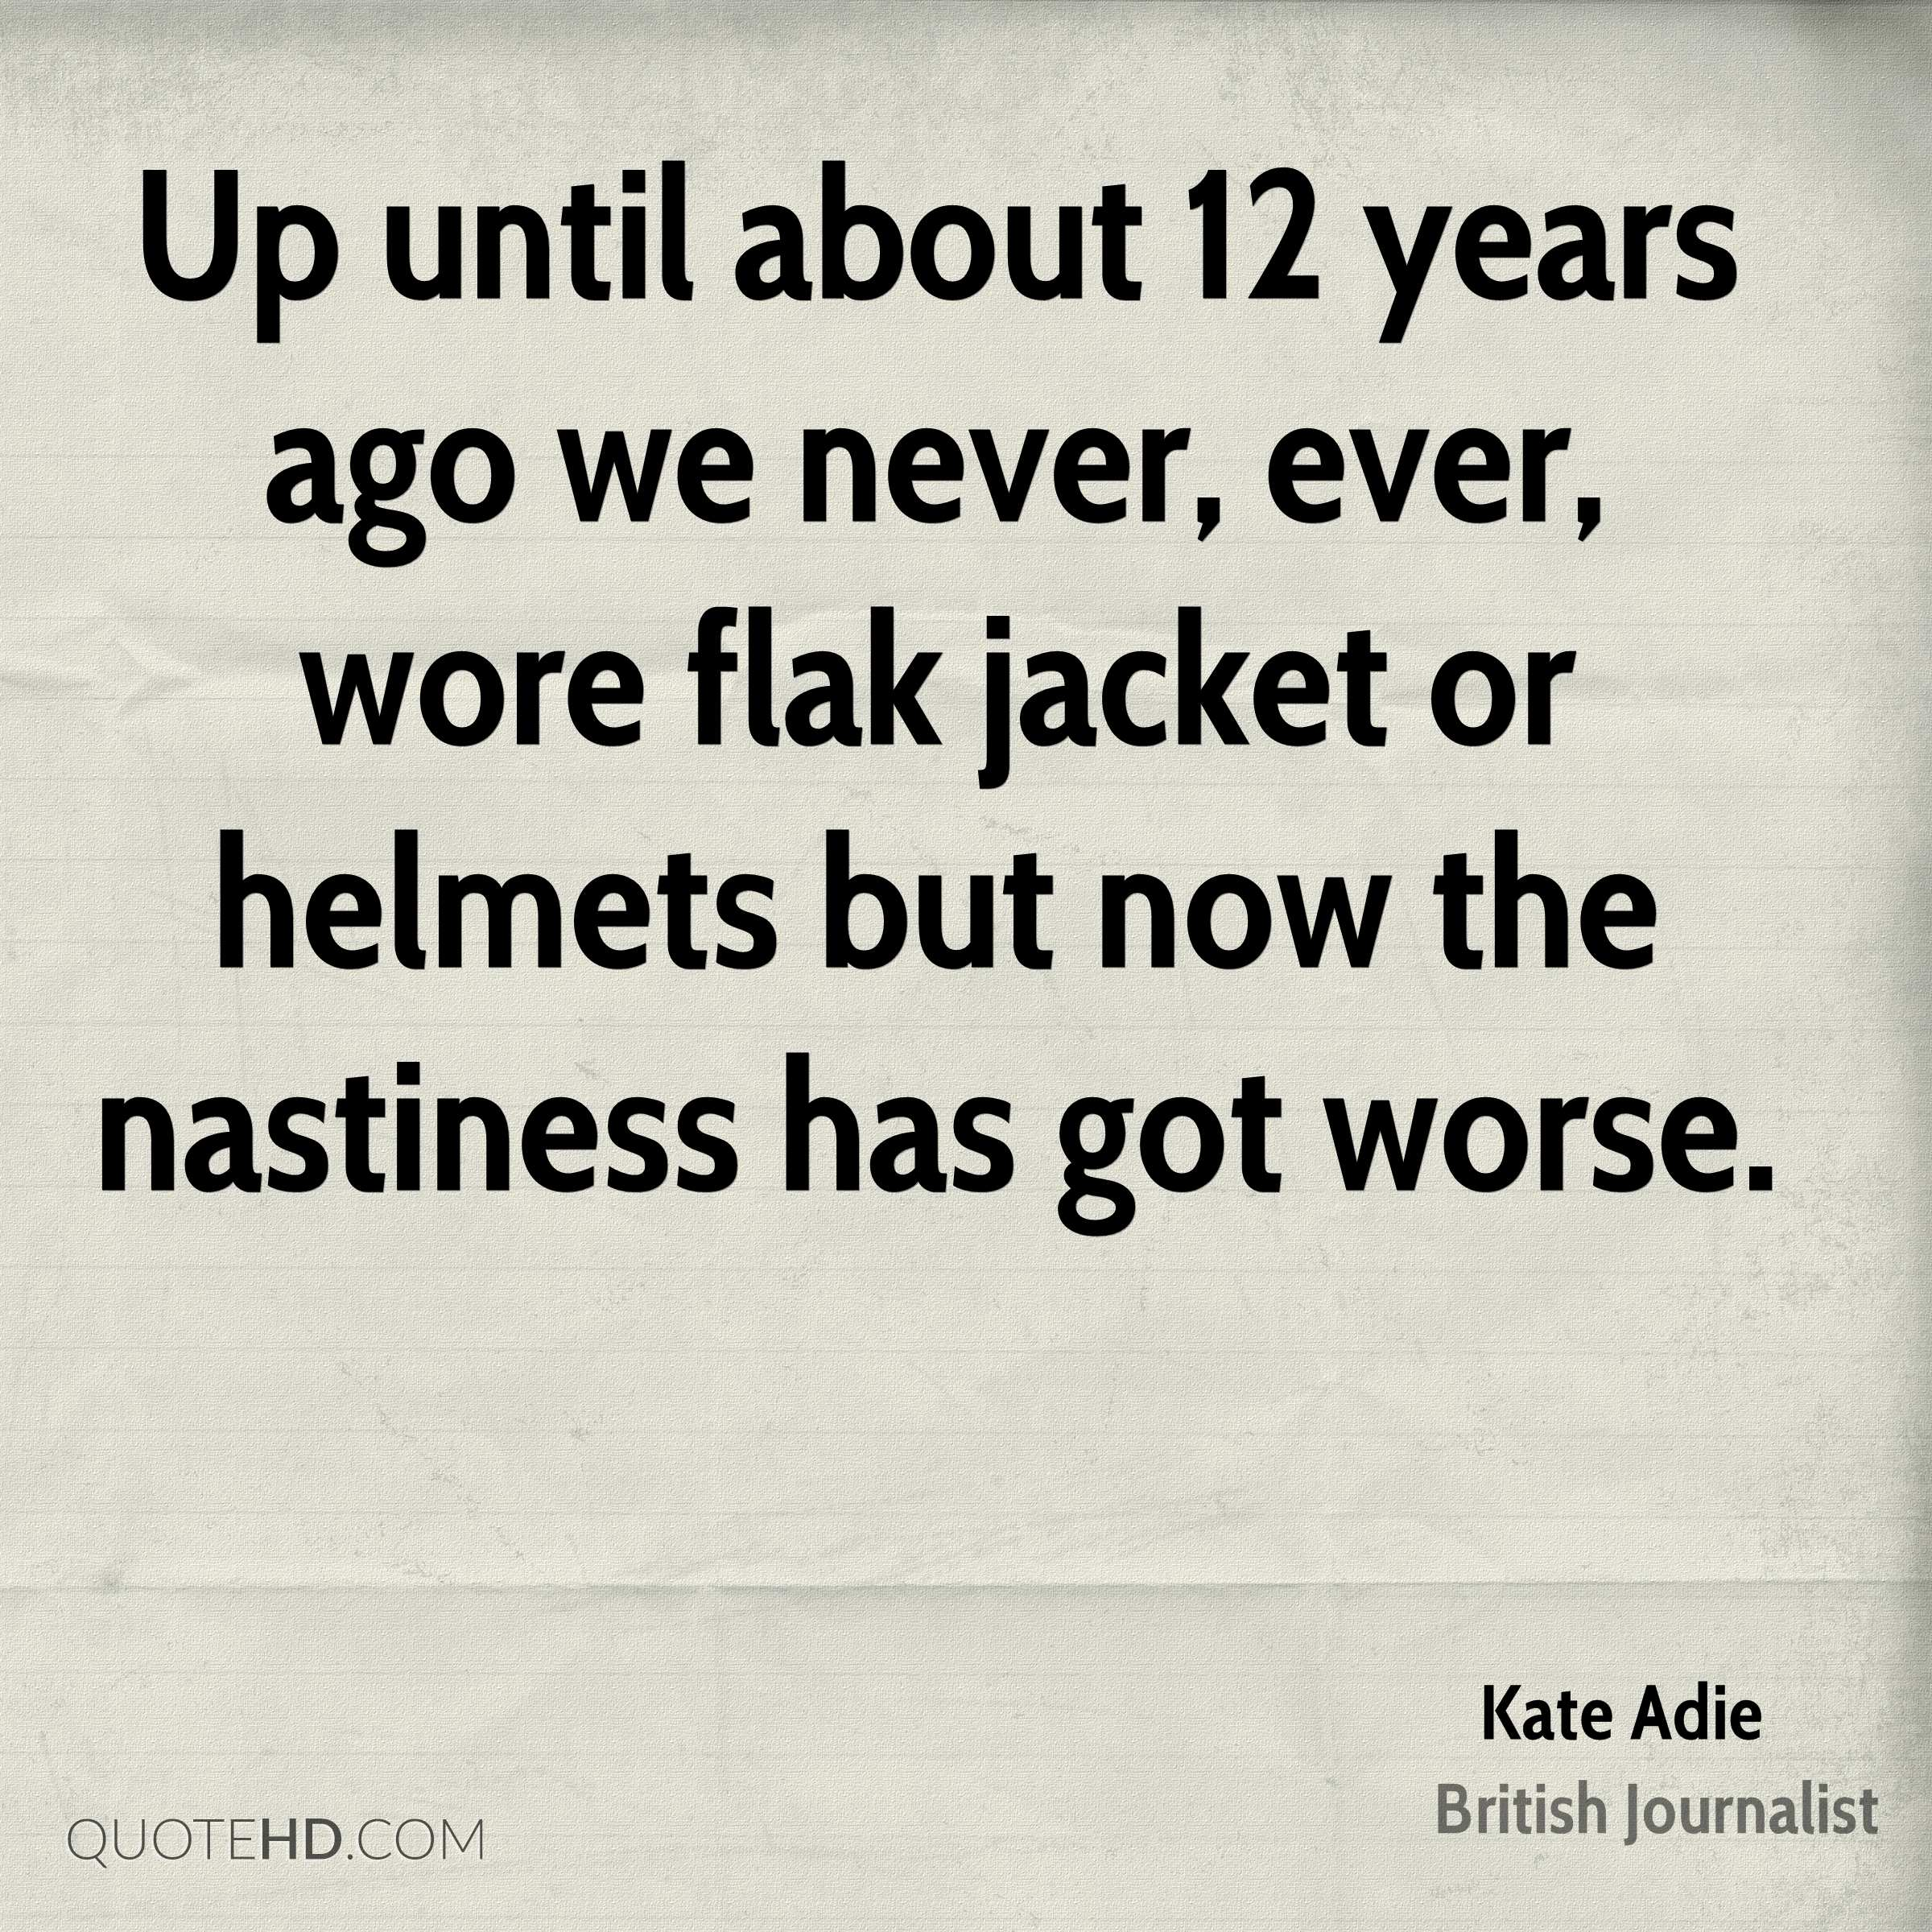 Up until about 12 years ago we never, ever, wore flak jacket or helmets but now the nastiness has got worse.